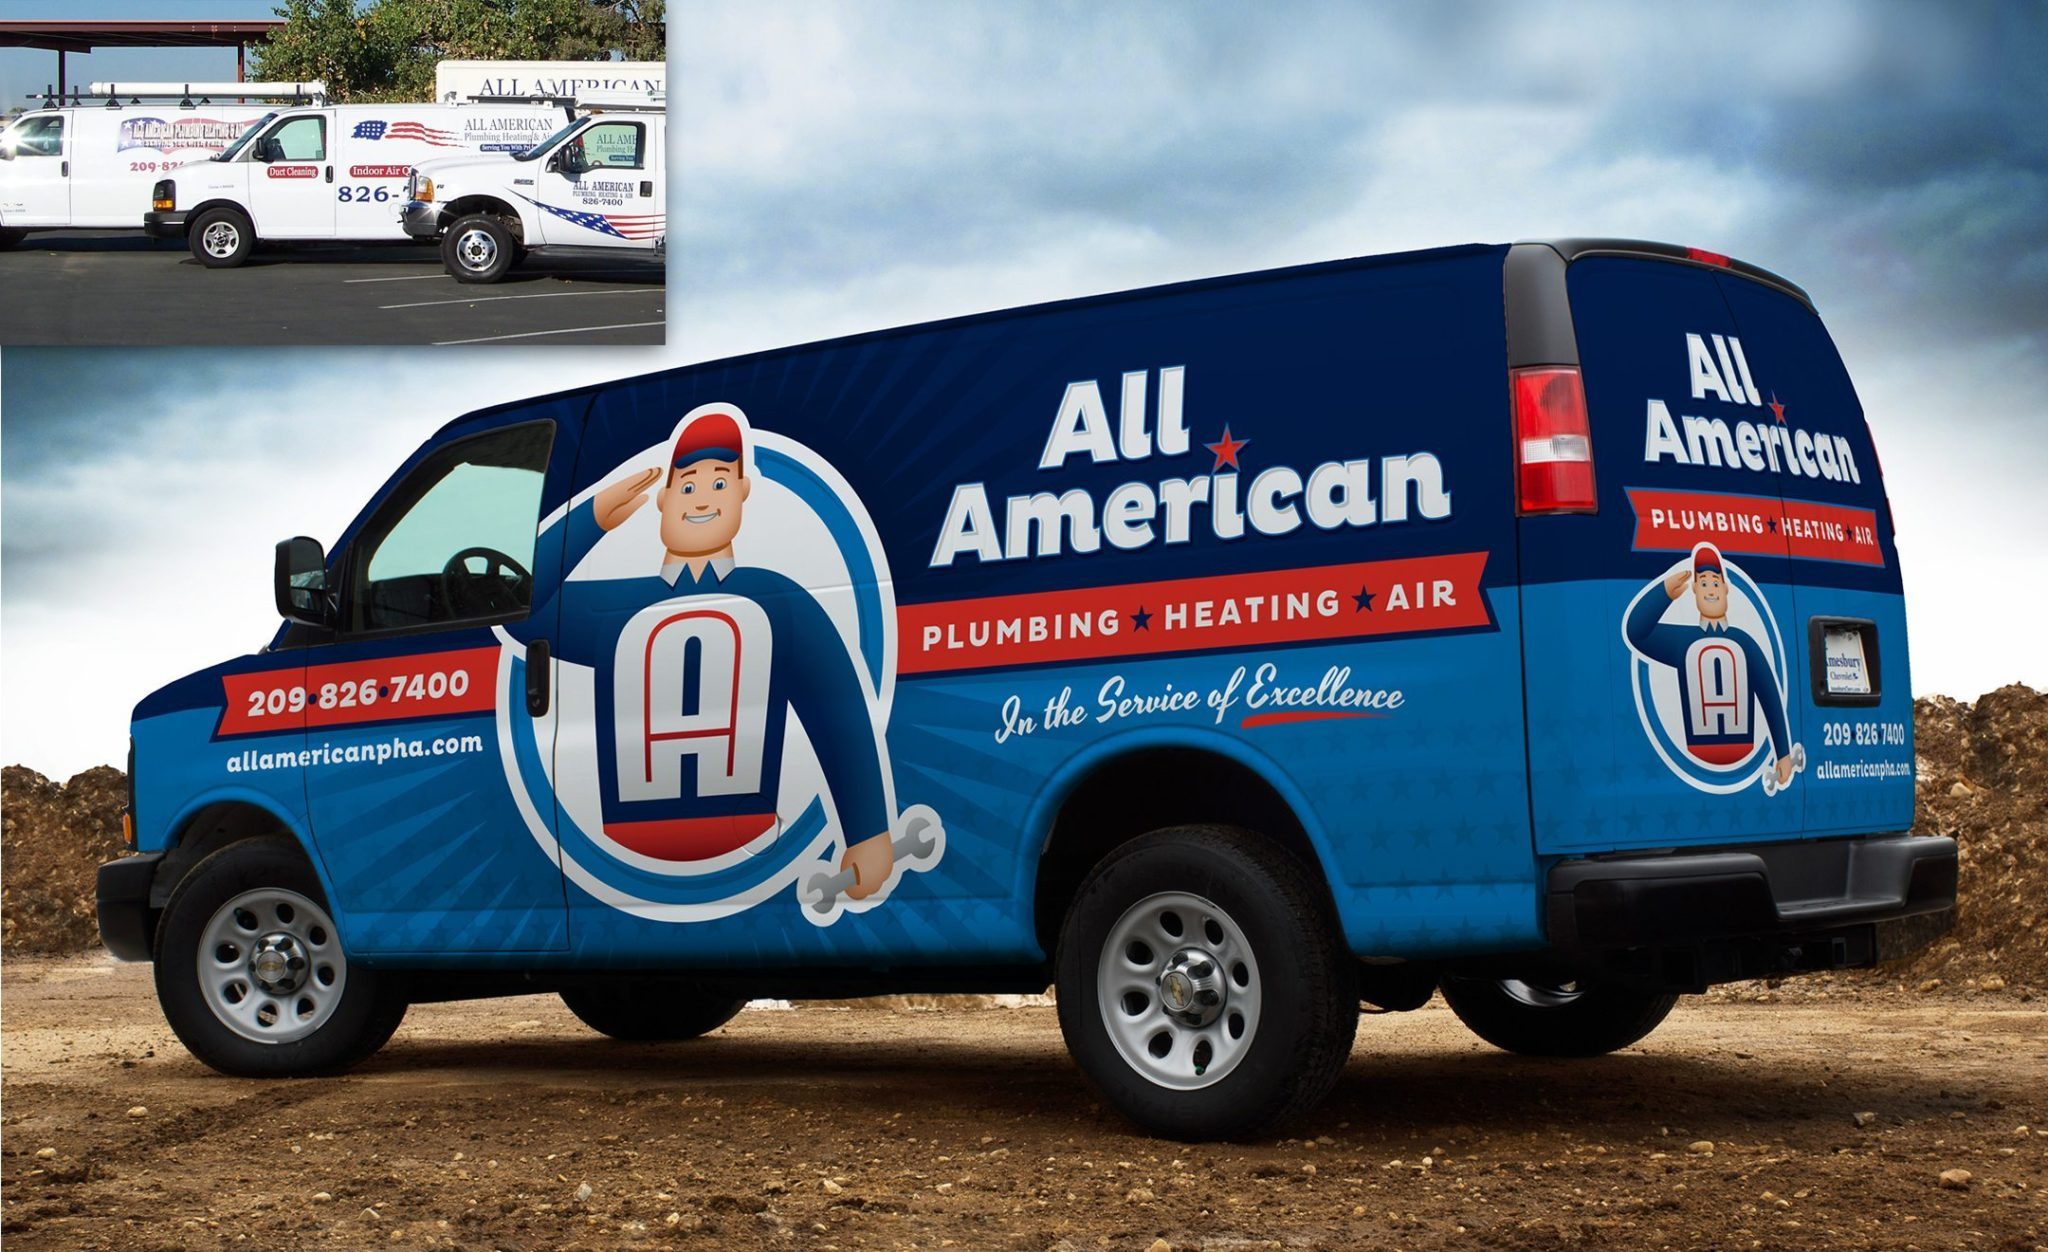 all american plumbing heating air